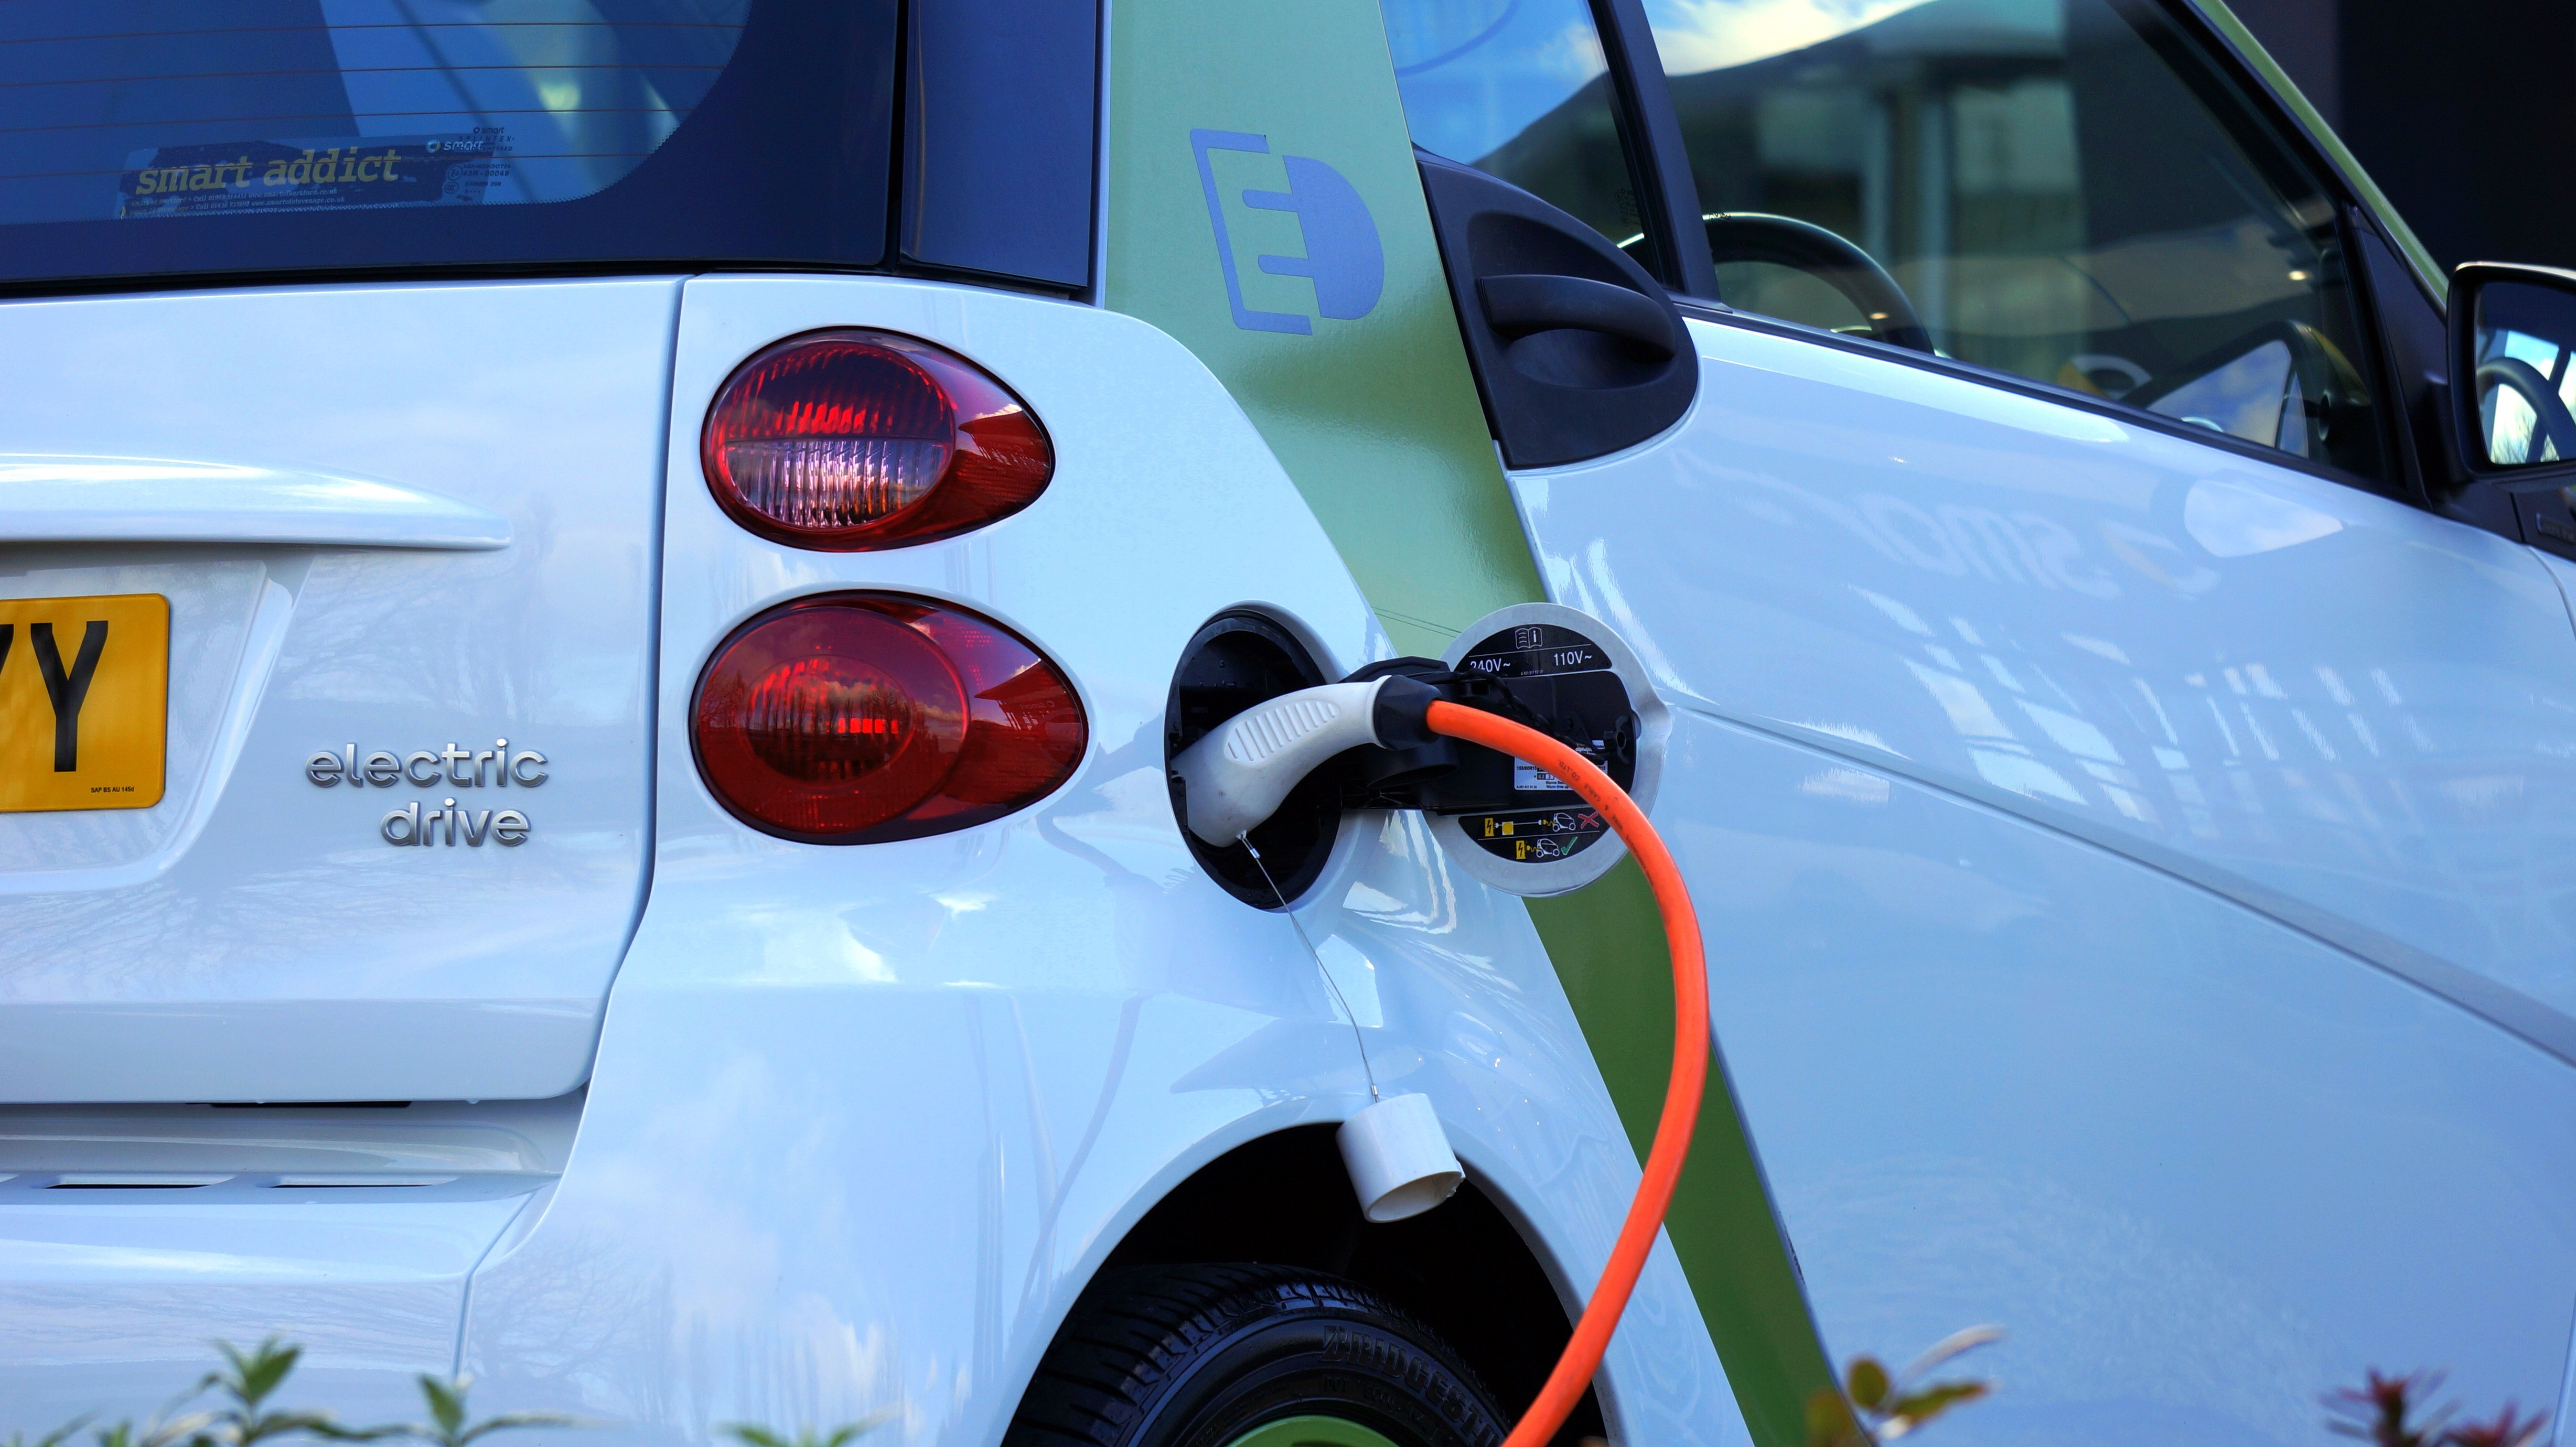 electric cars; Company car tax - why it might pay to go electric